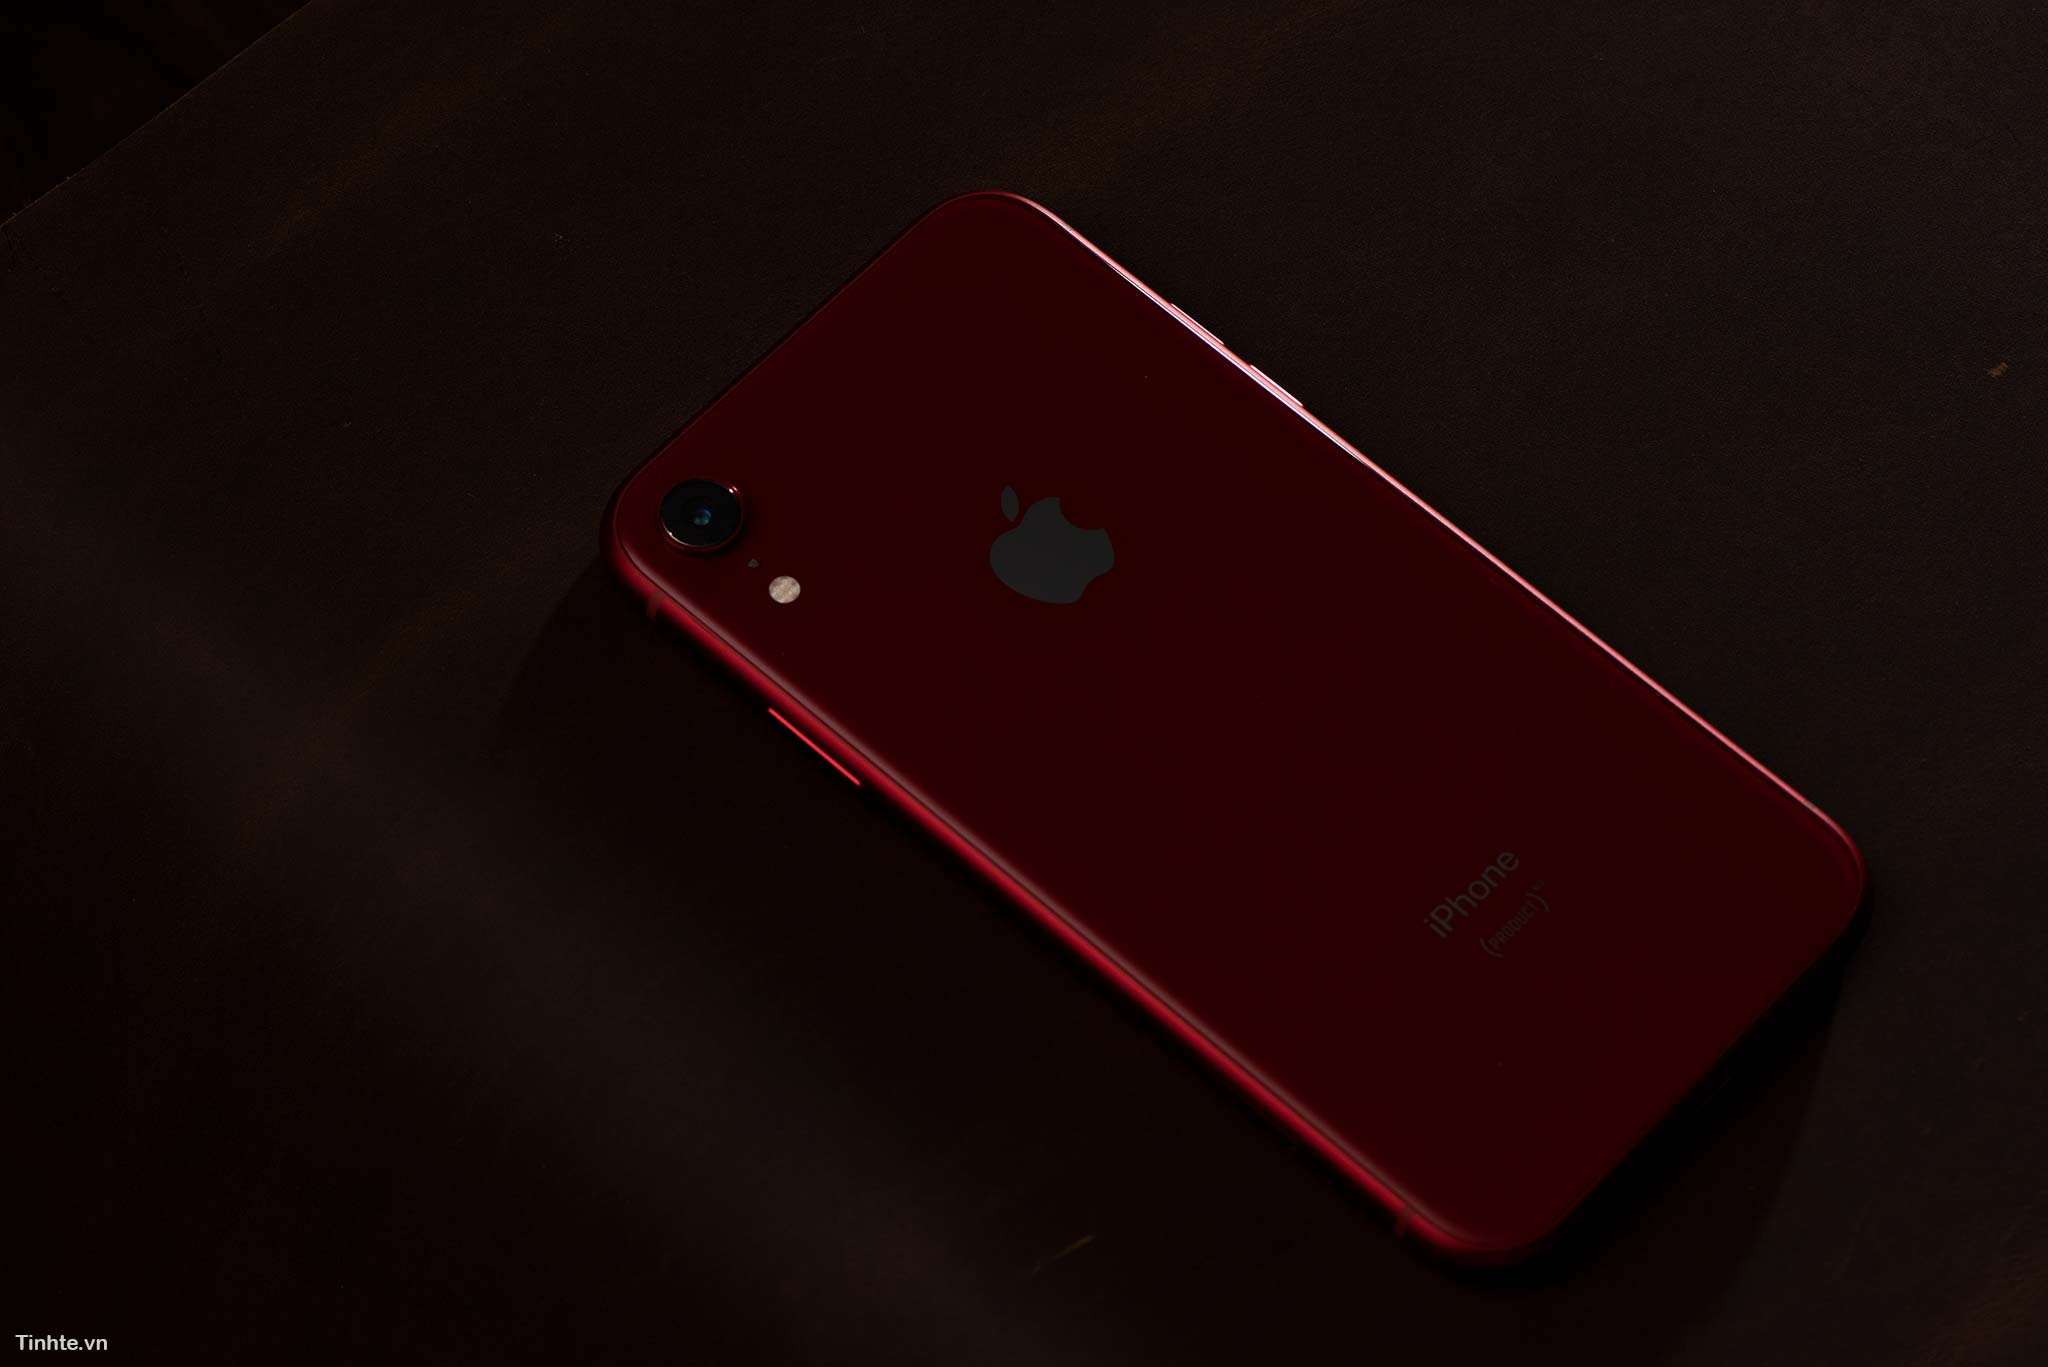 tinhte_tren_tay_iphone_xr_product_red_11.jpg